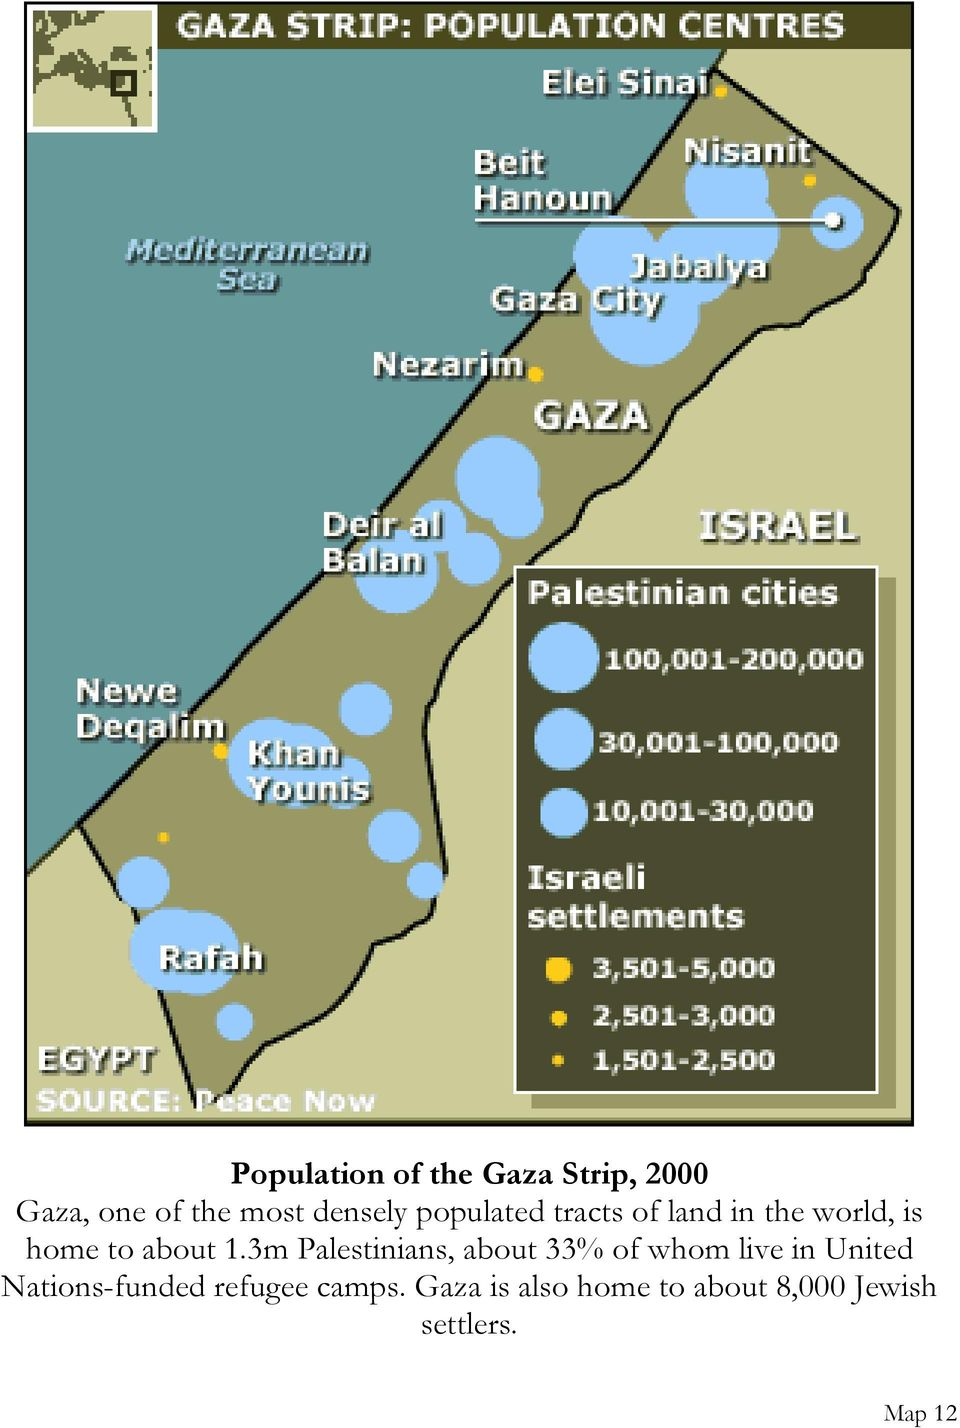 3m Palestinians, about 33% of whom live in United Nations-funded